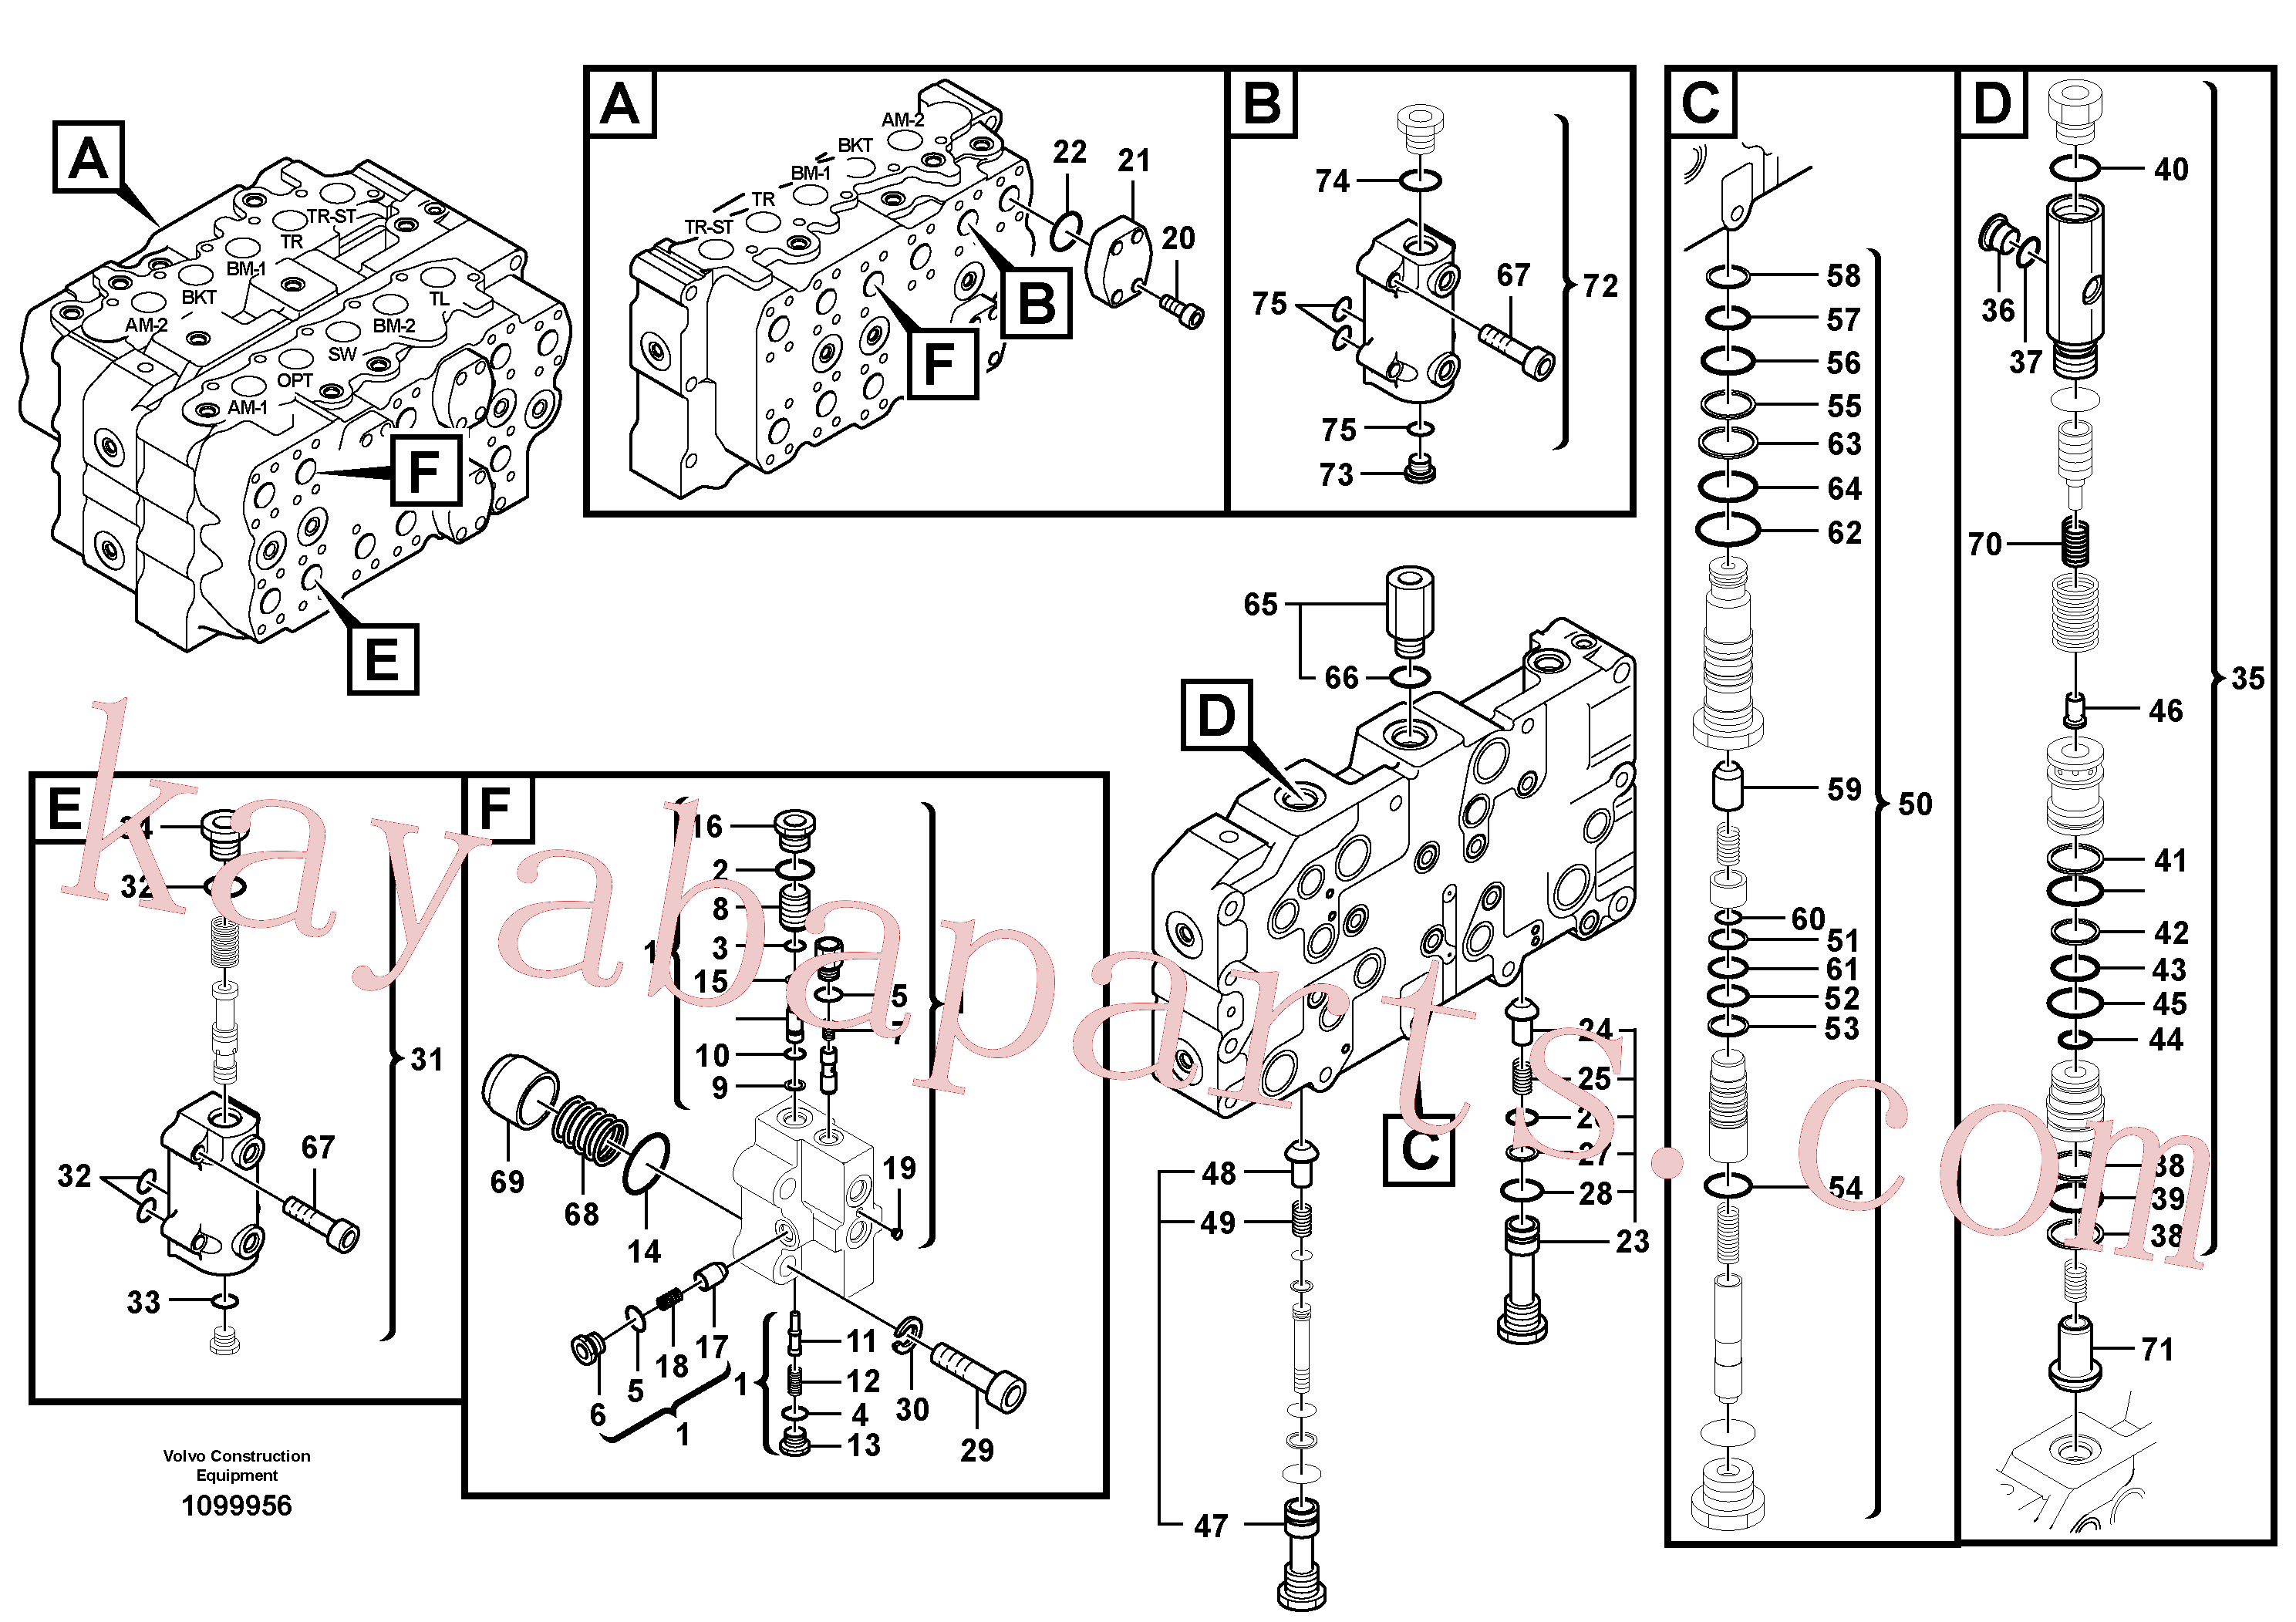 VOE14699830 for Volvo Main control valve(1099956 assembly)